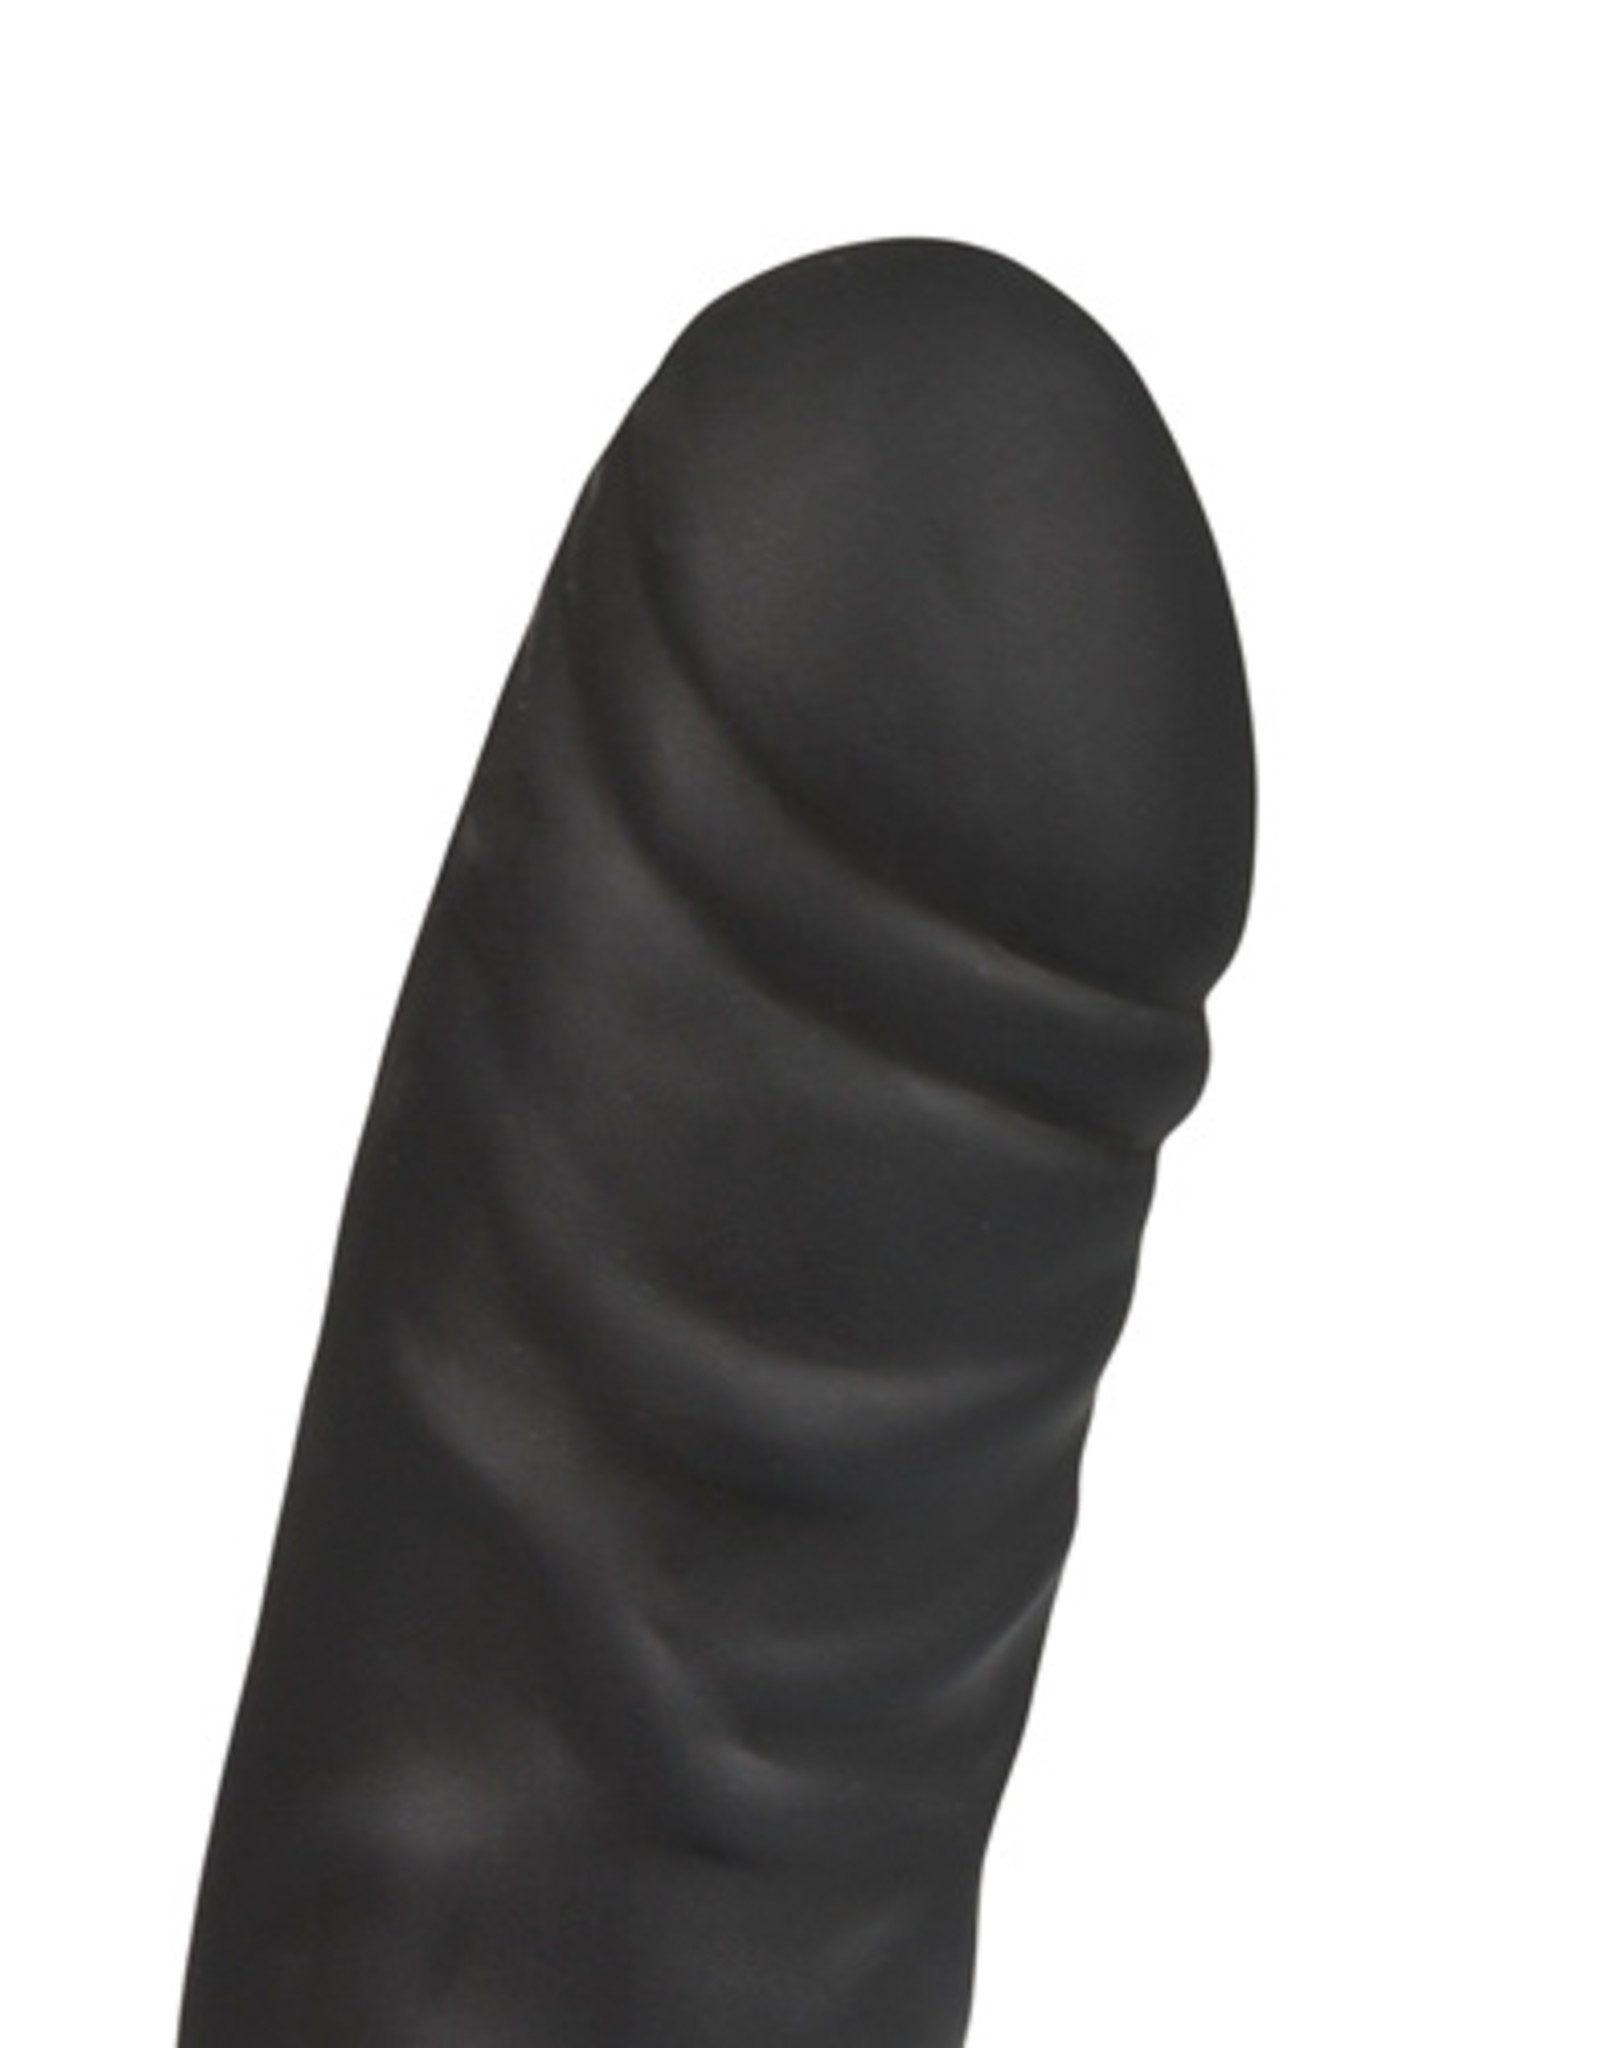 Size Matters Erection Assist Holle Strap-On Dildo